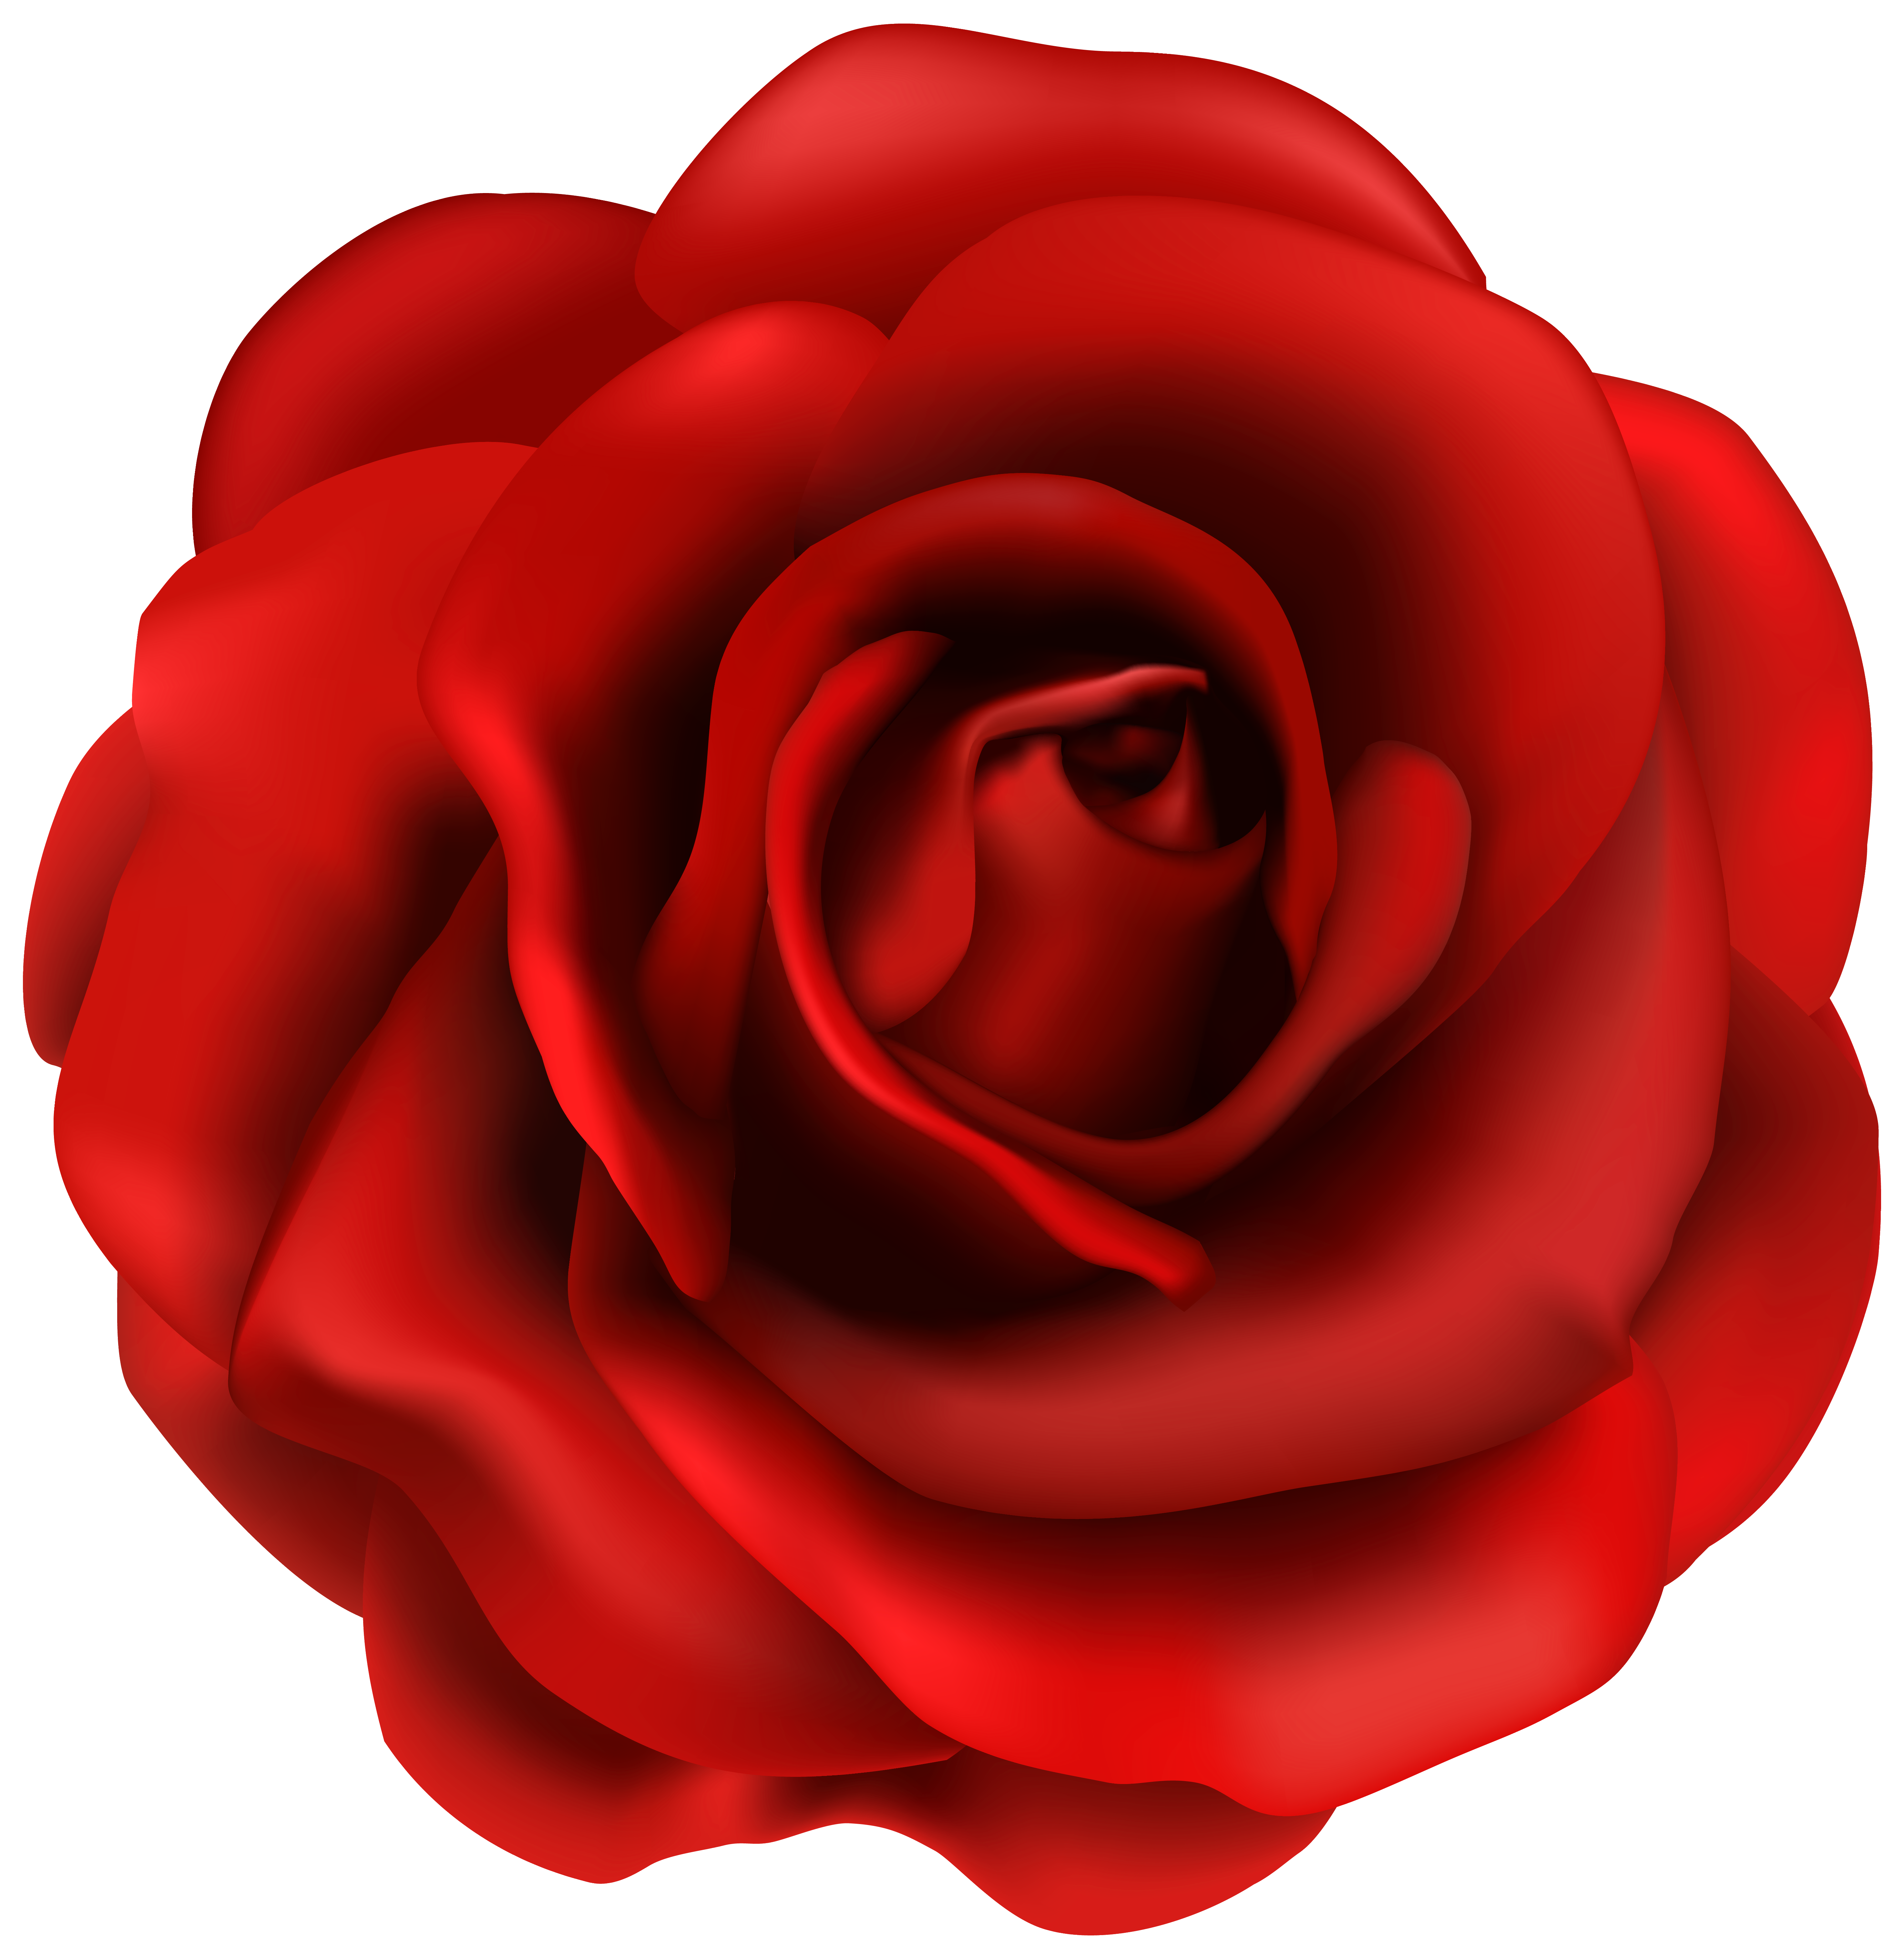 5898x6068 Red Rose Flower Png Clipart Imageu200b Gallery Yopriceville